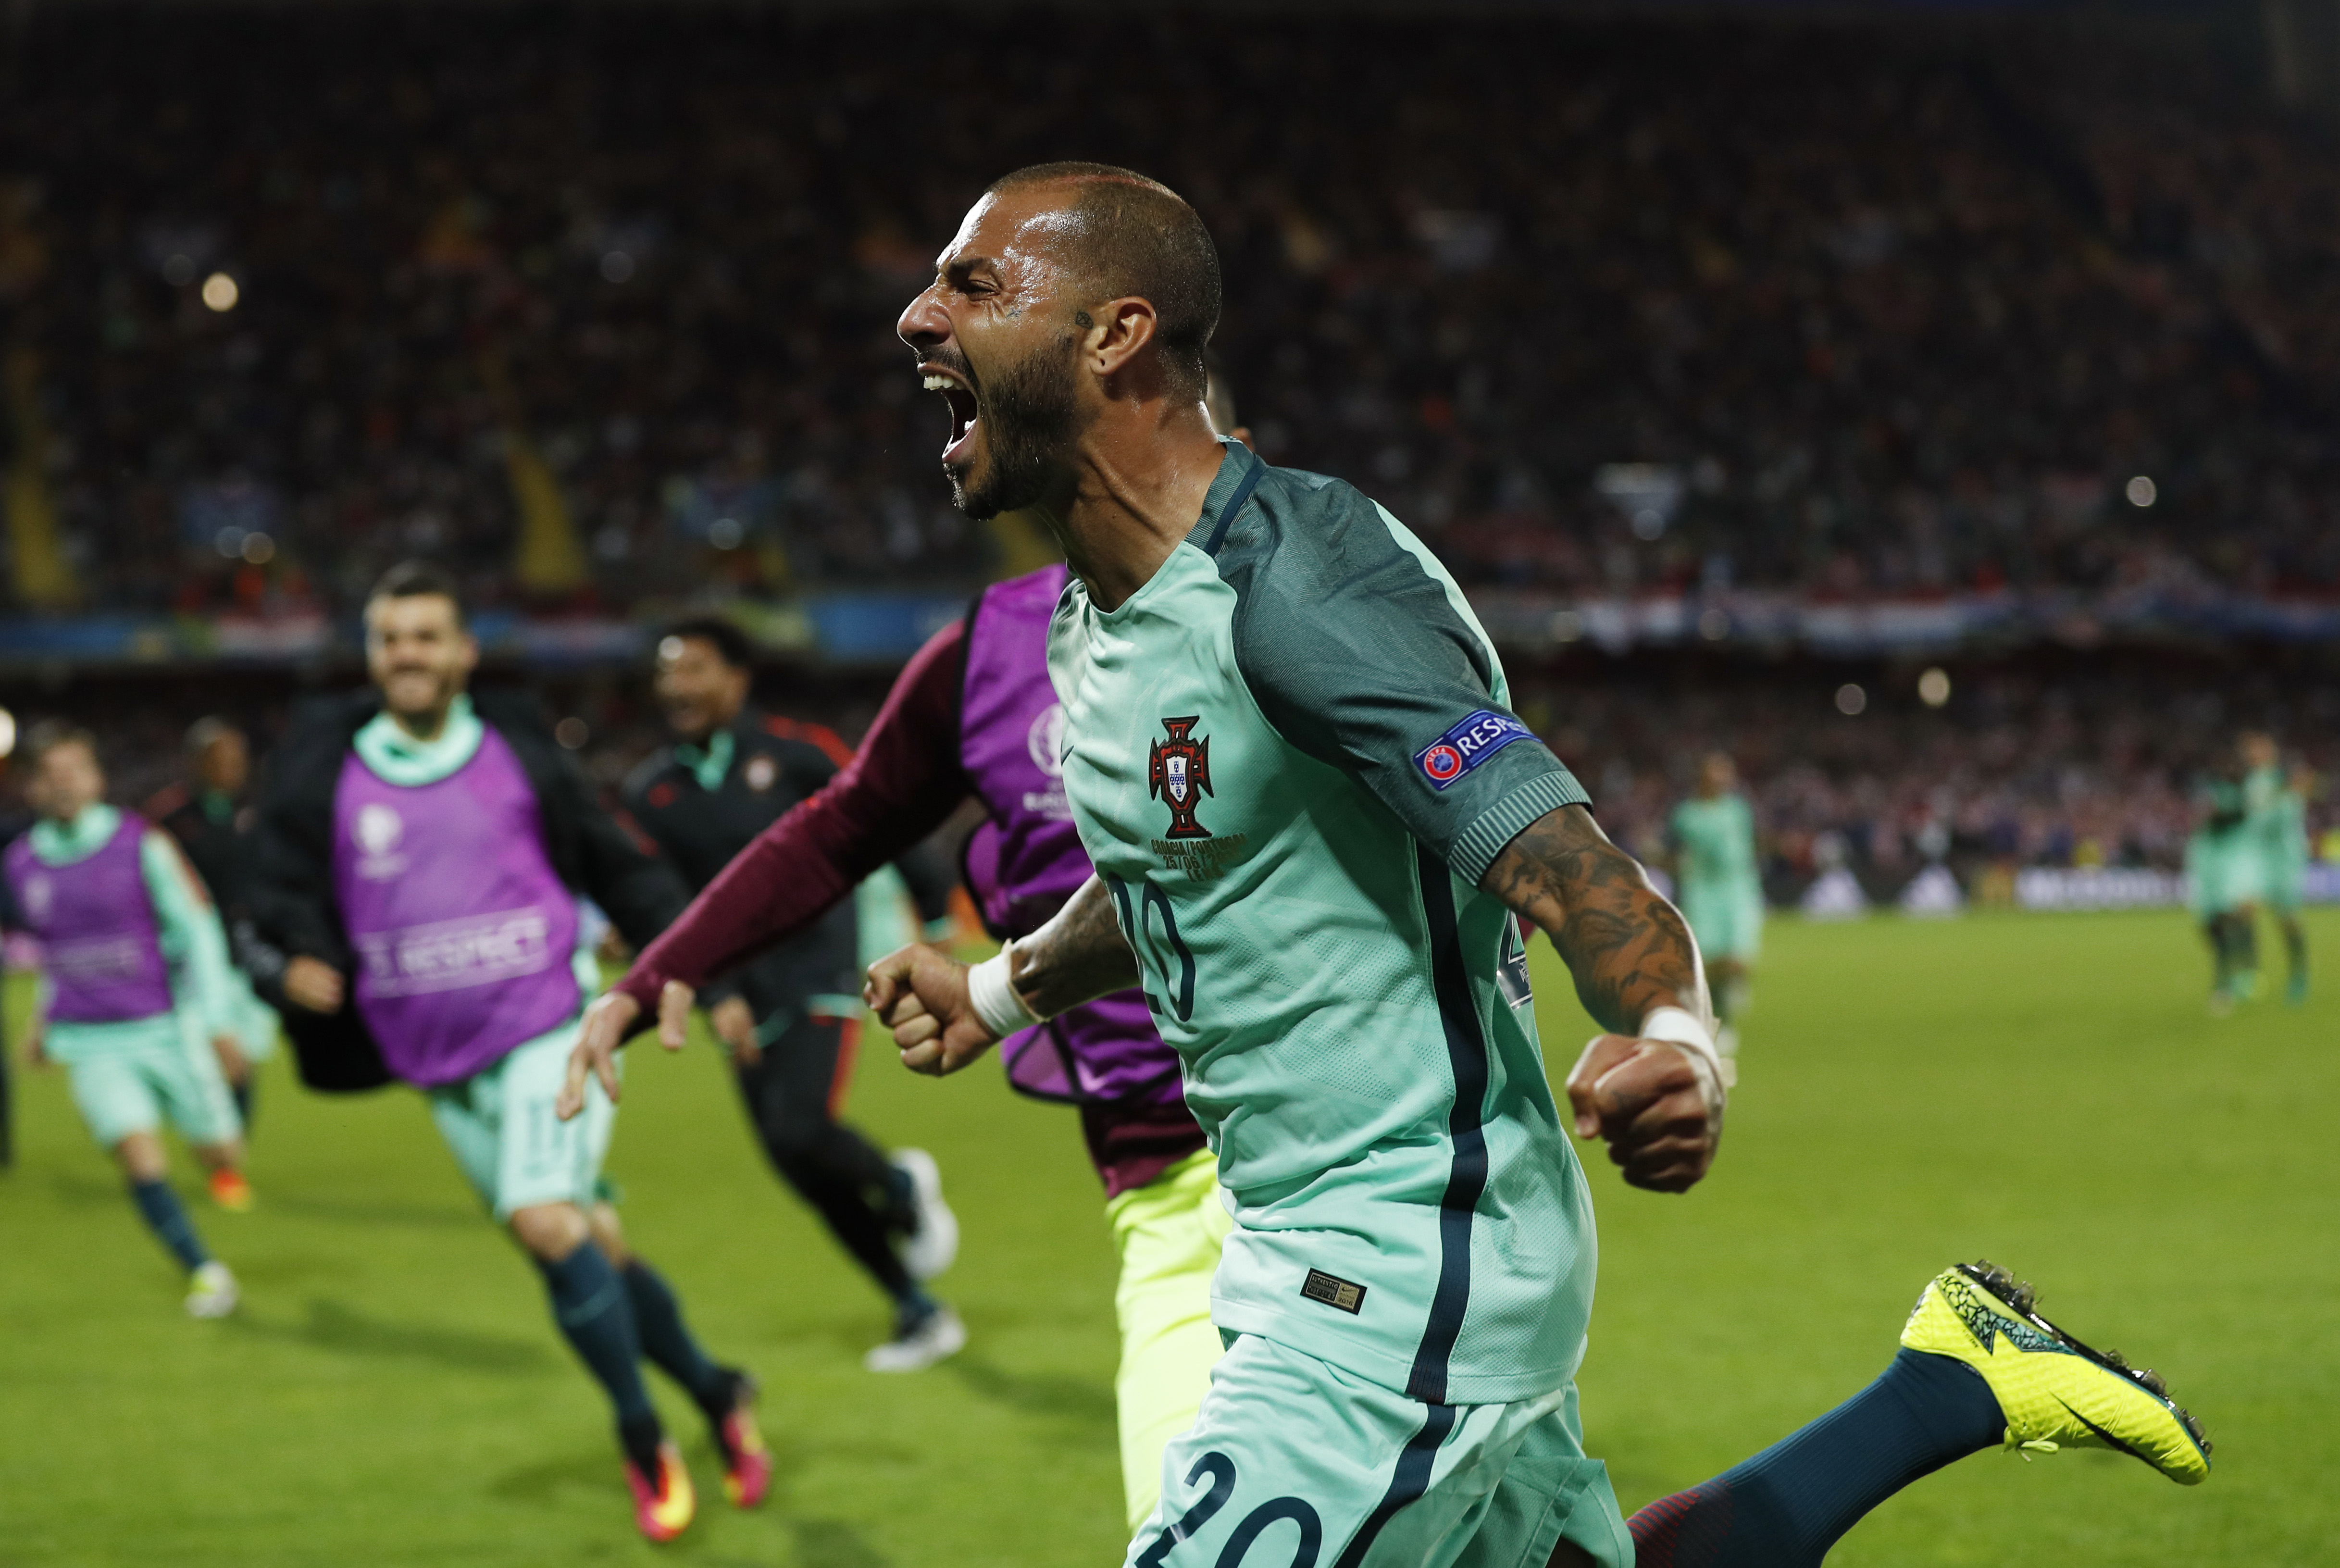 Euro 2016: Portugal substitute Quaresma snatches extra-time winner